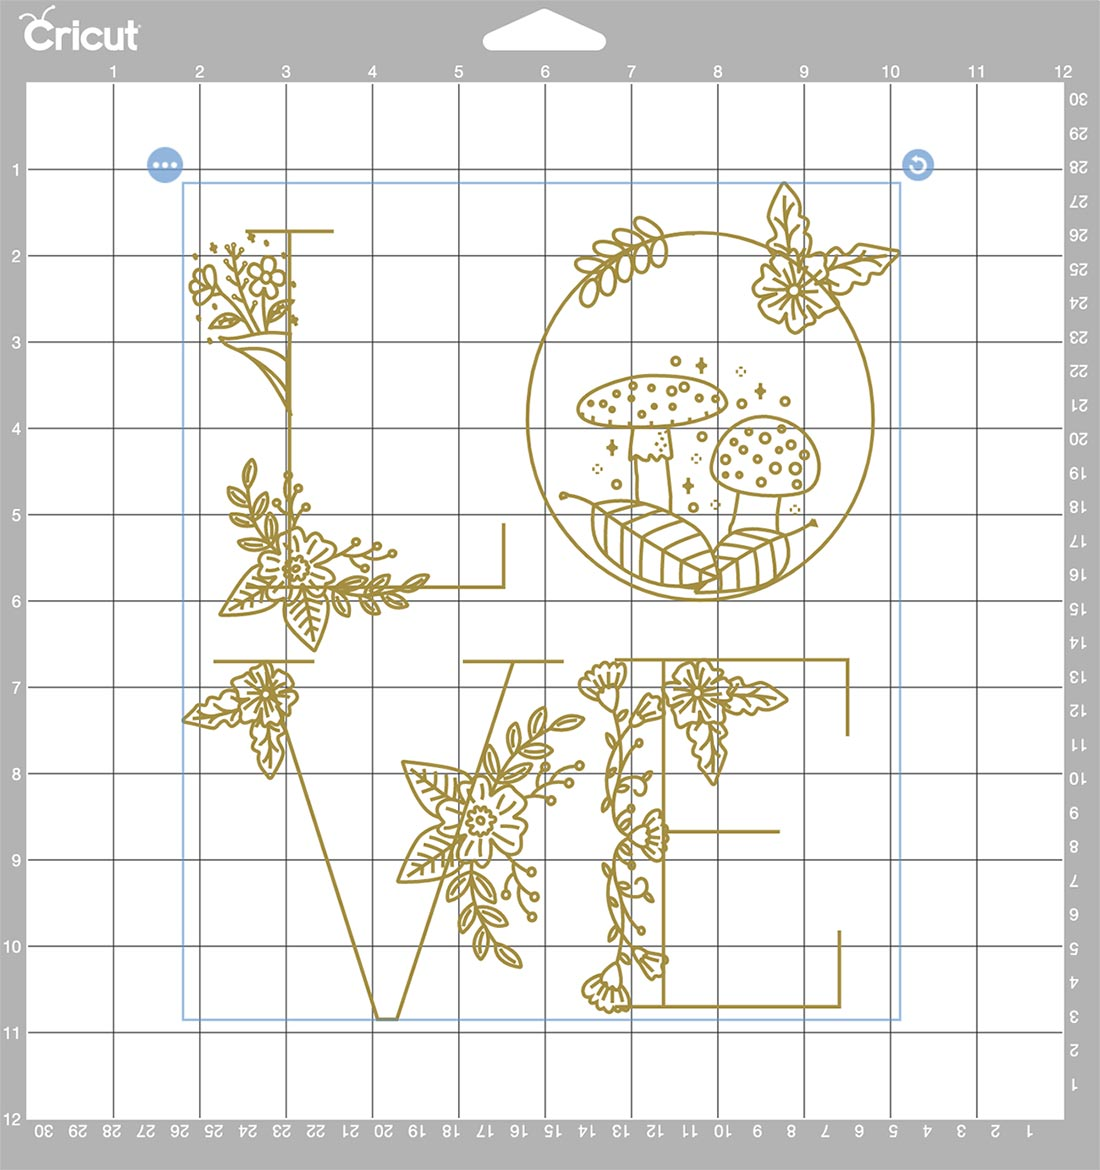 How ot position your Cricut Foil Projects on your cutting mat